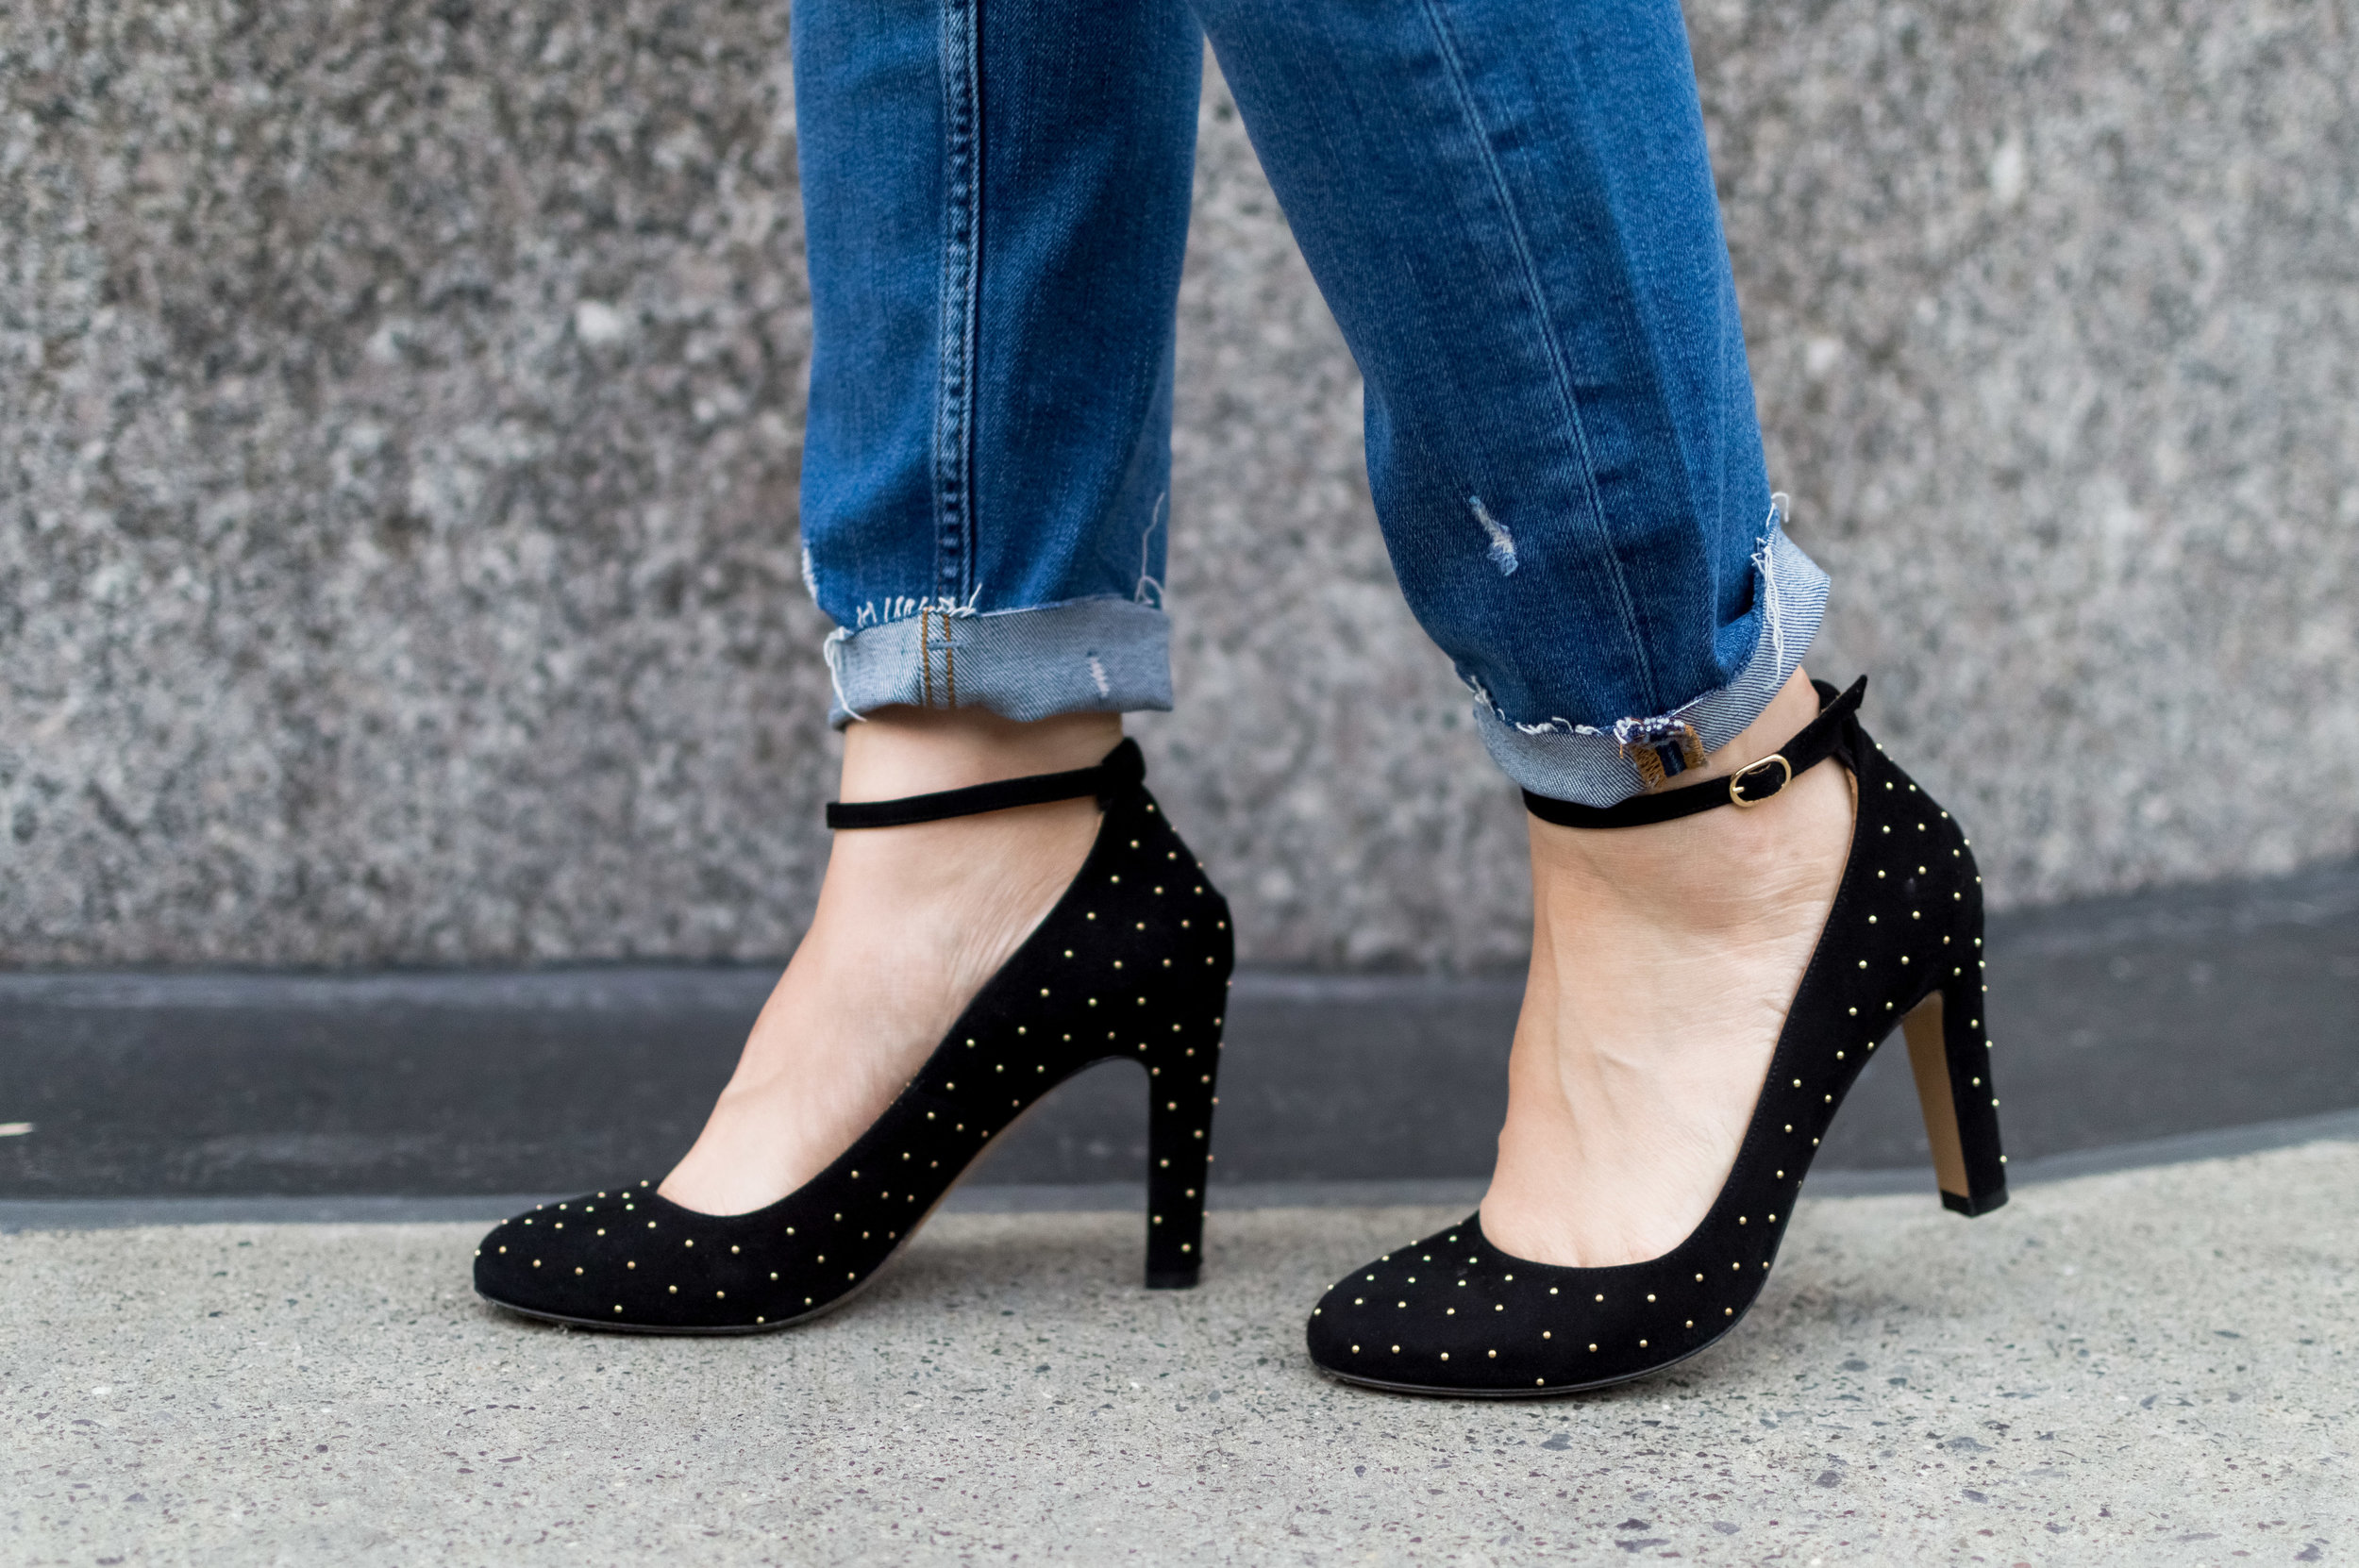 This pair of studded black pumps is from Sezane, one of my new favorite brands!